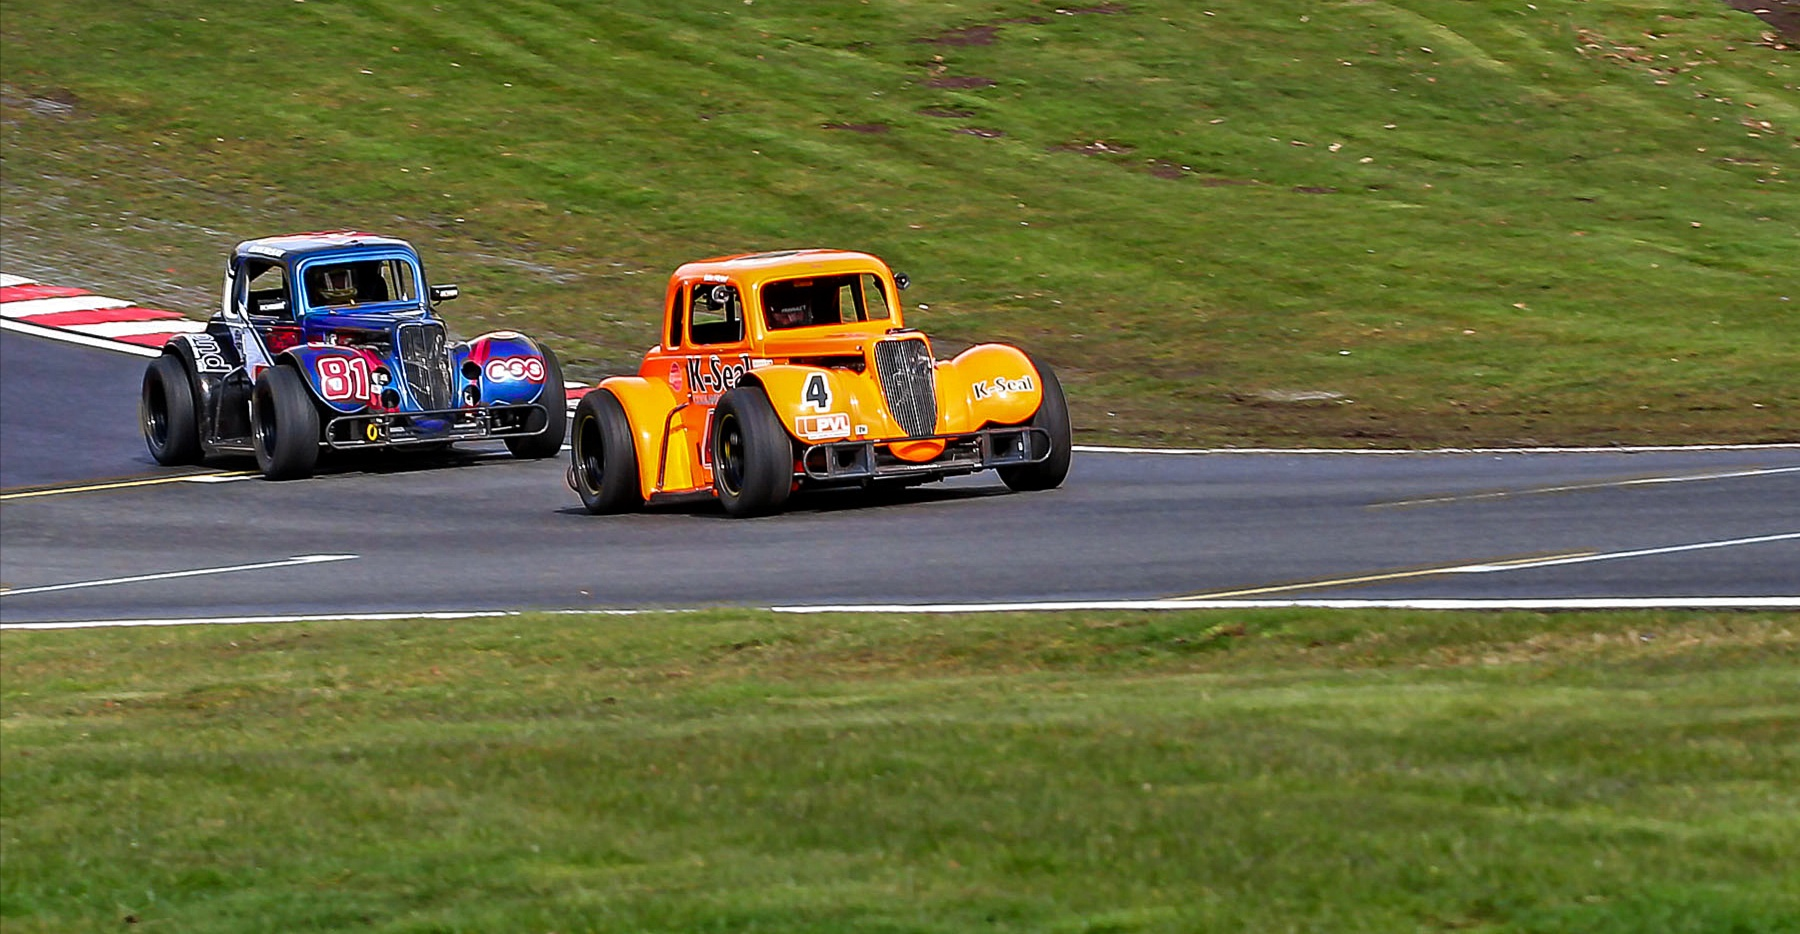 2015 - Round 1 - Oulton Park Gallery Image 47